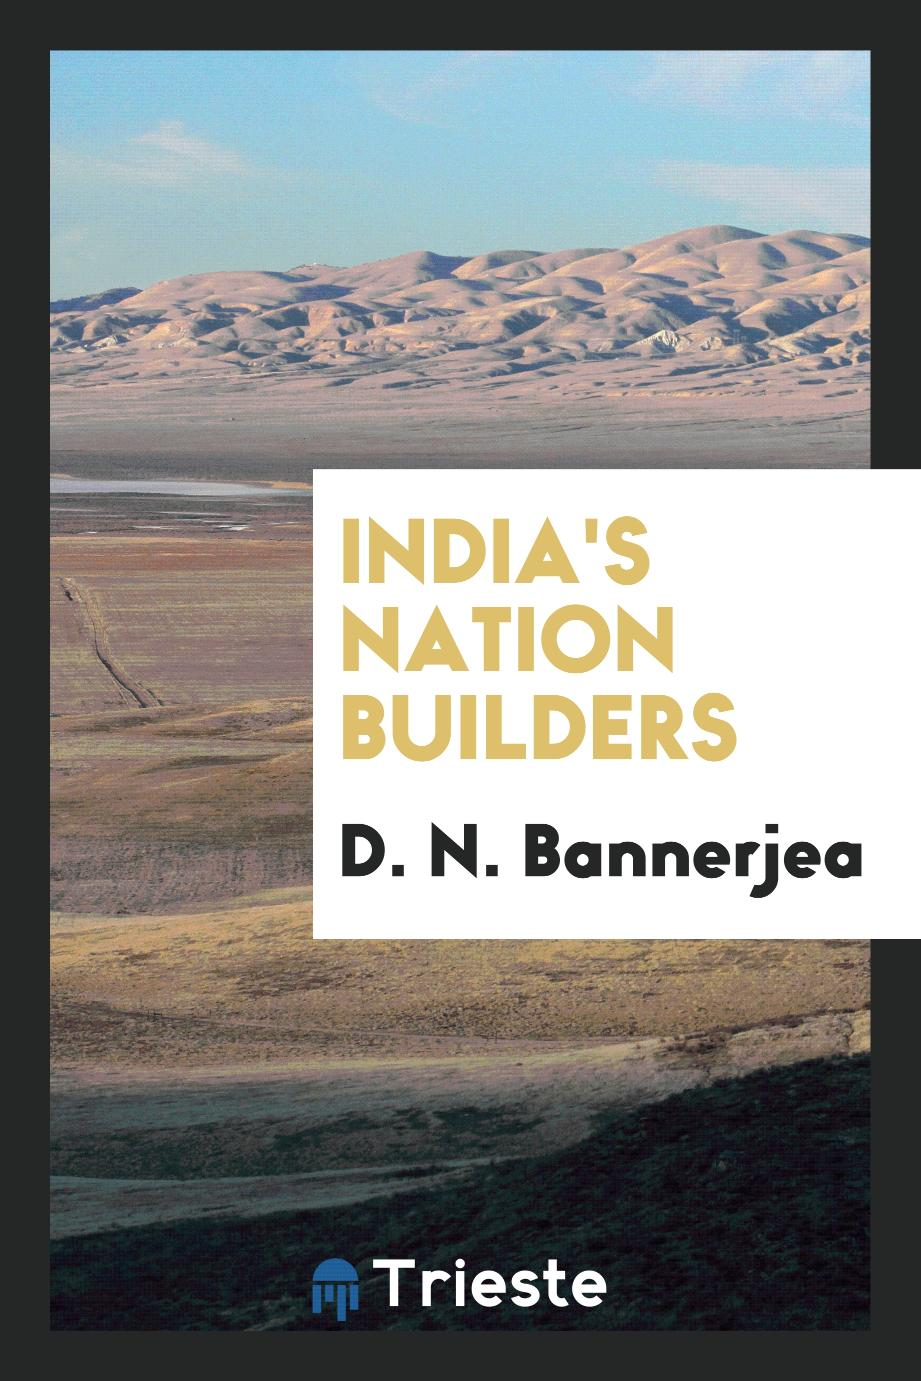 India's nation builders